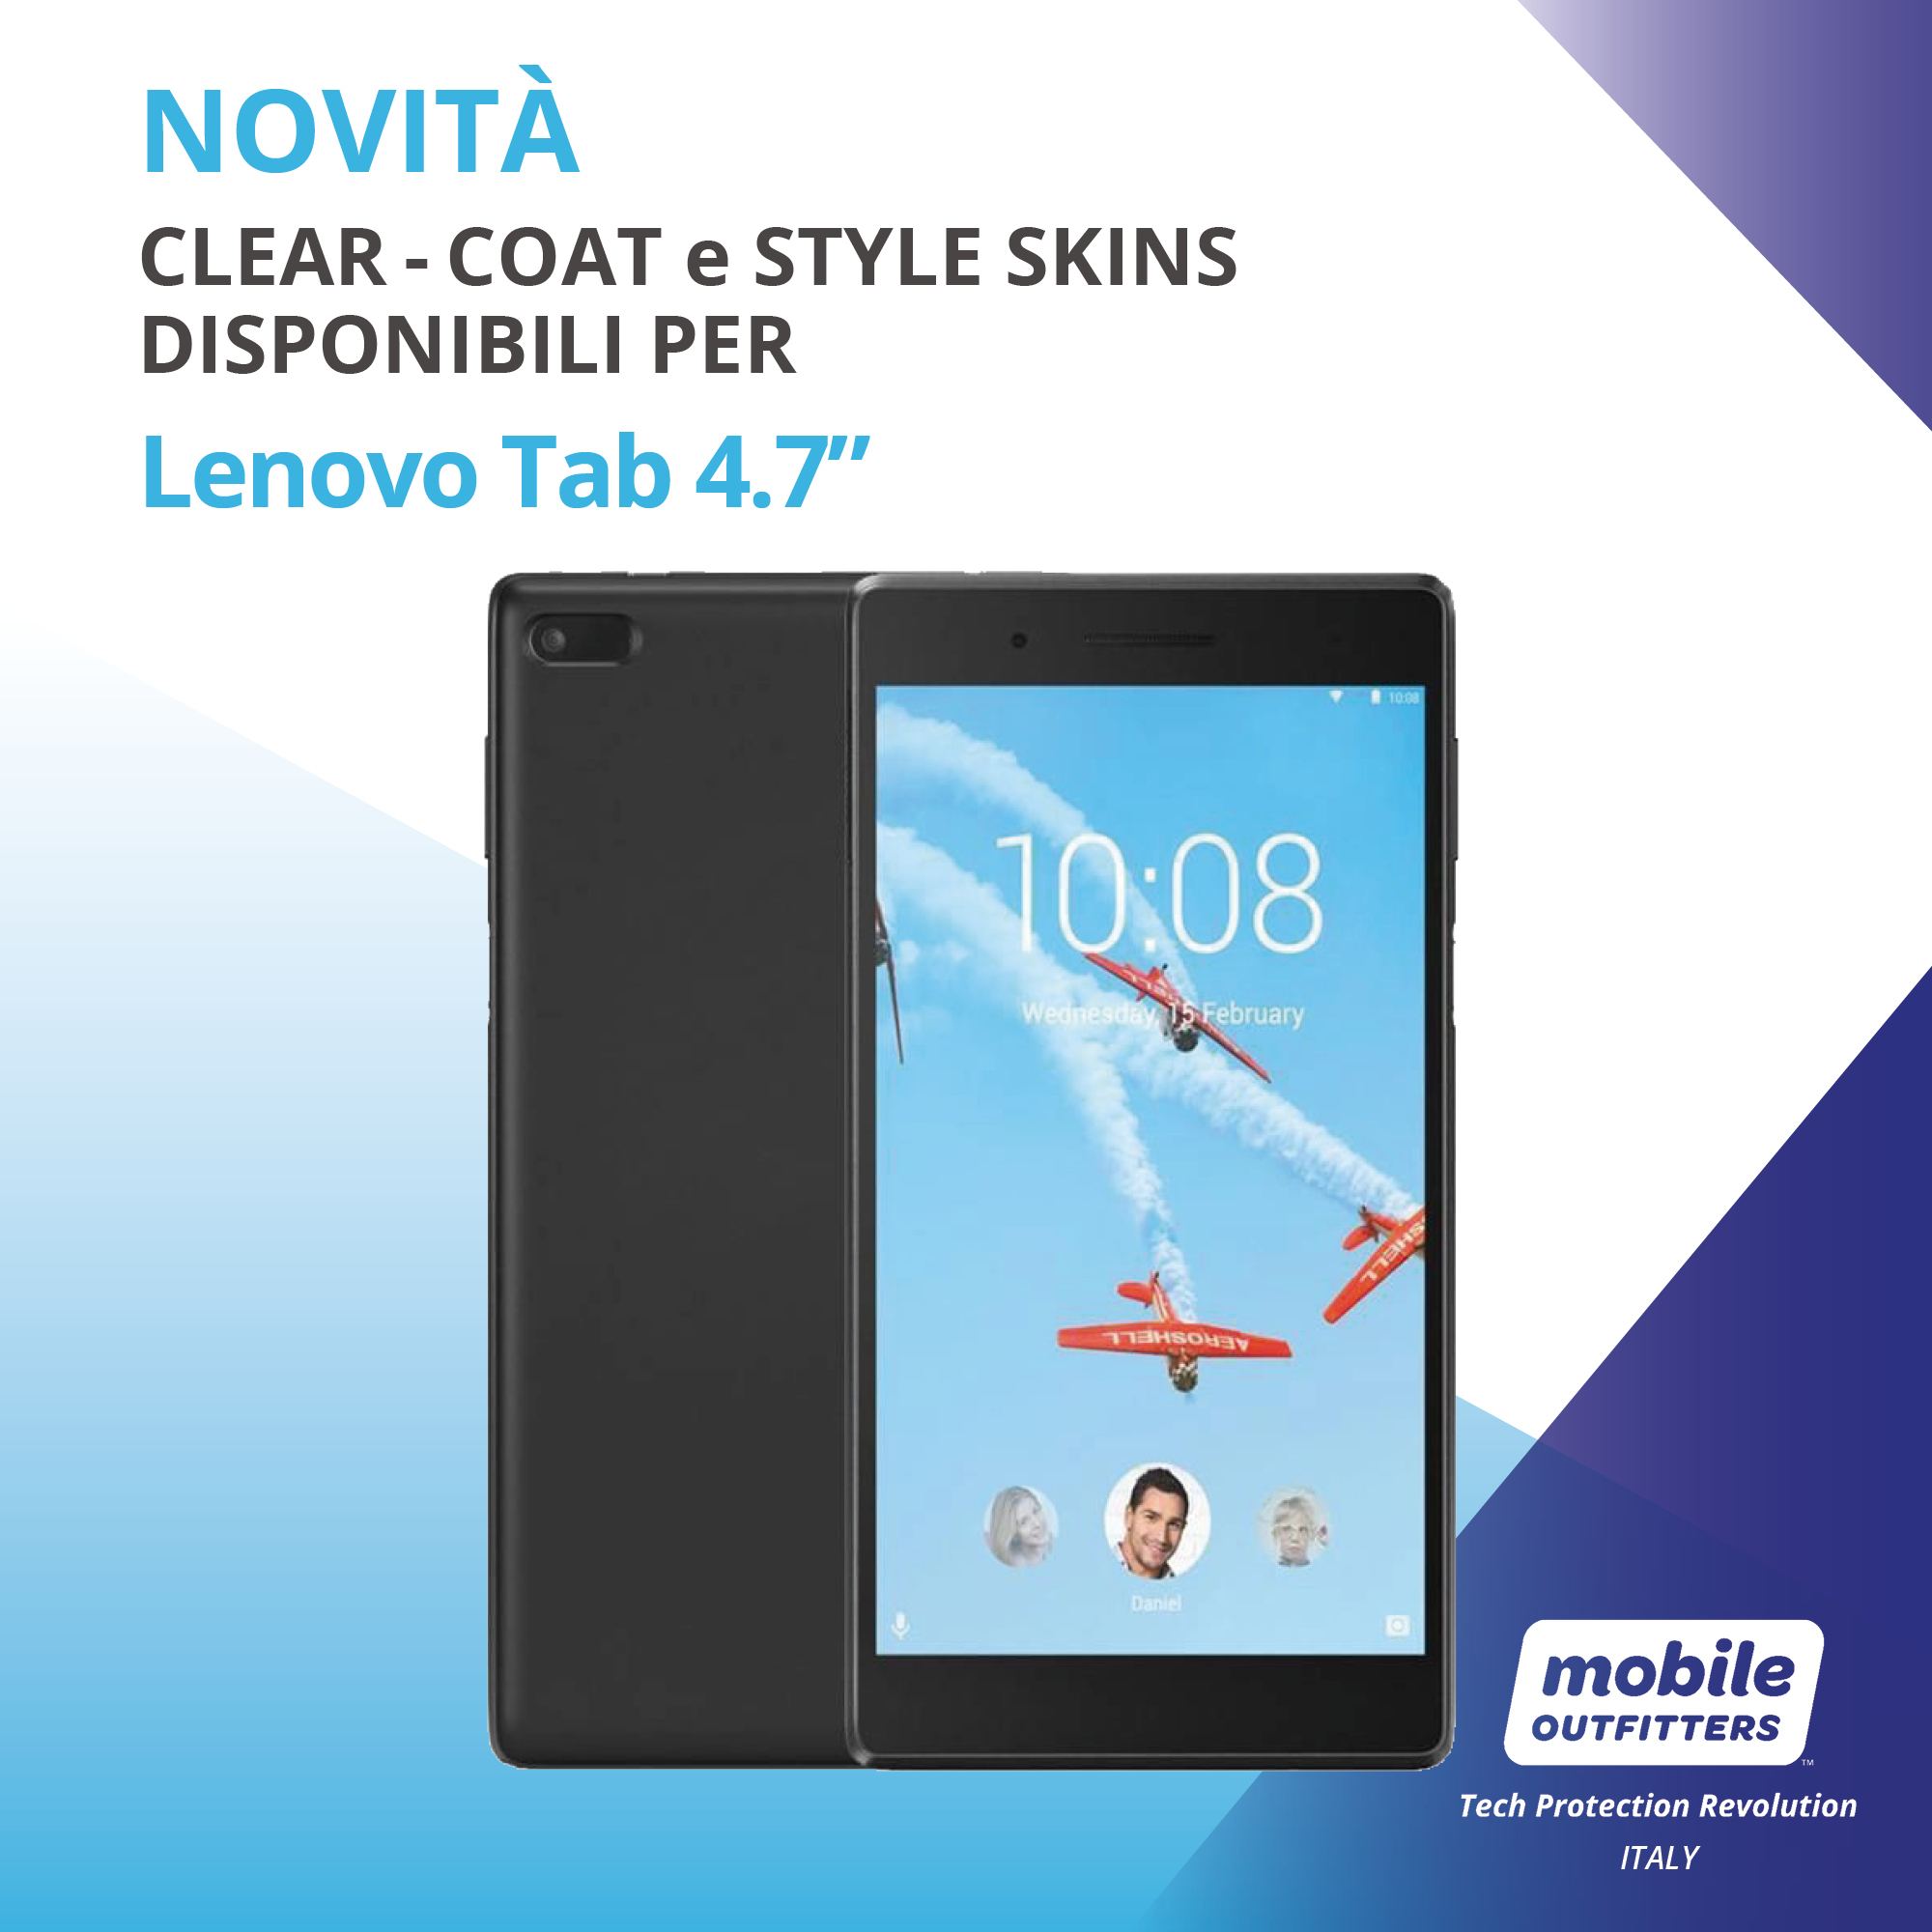 07_06_MOBILE OUTFITTERS_LENOVO TAB 4.7_